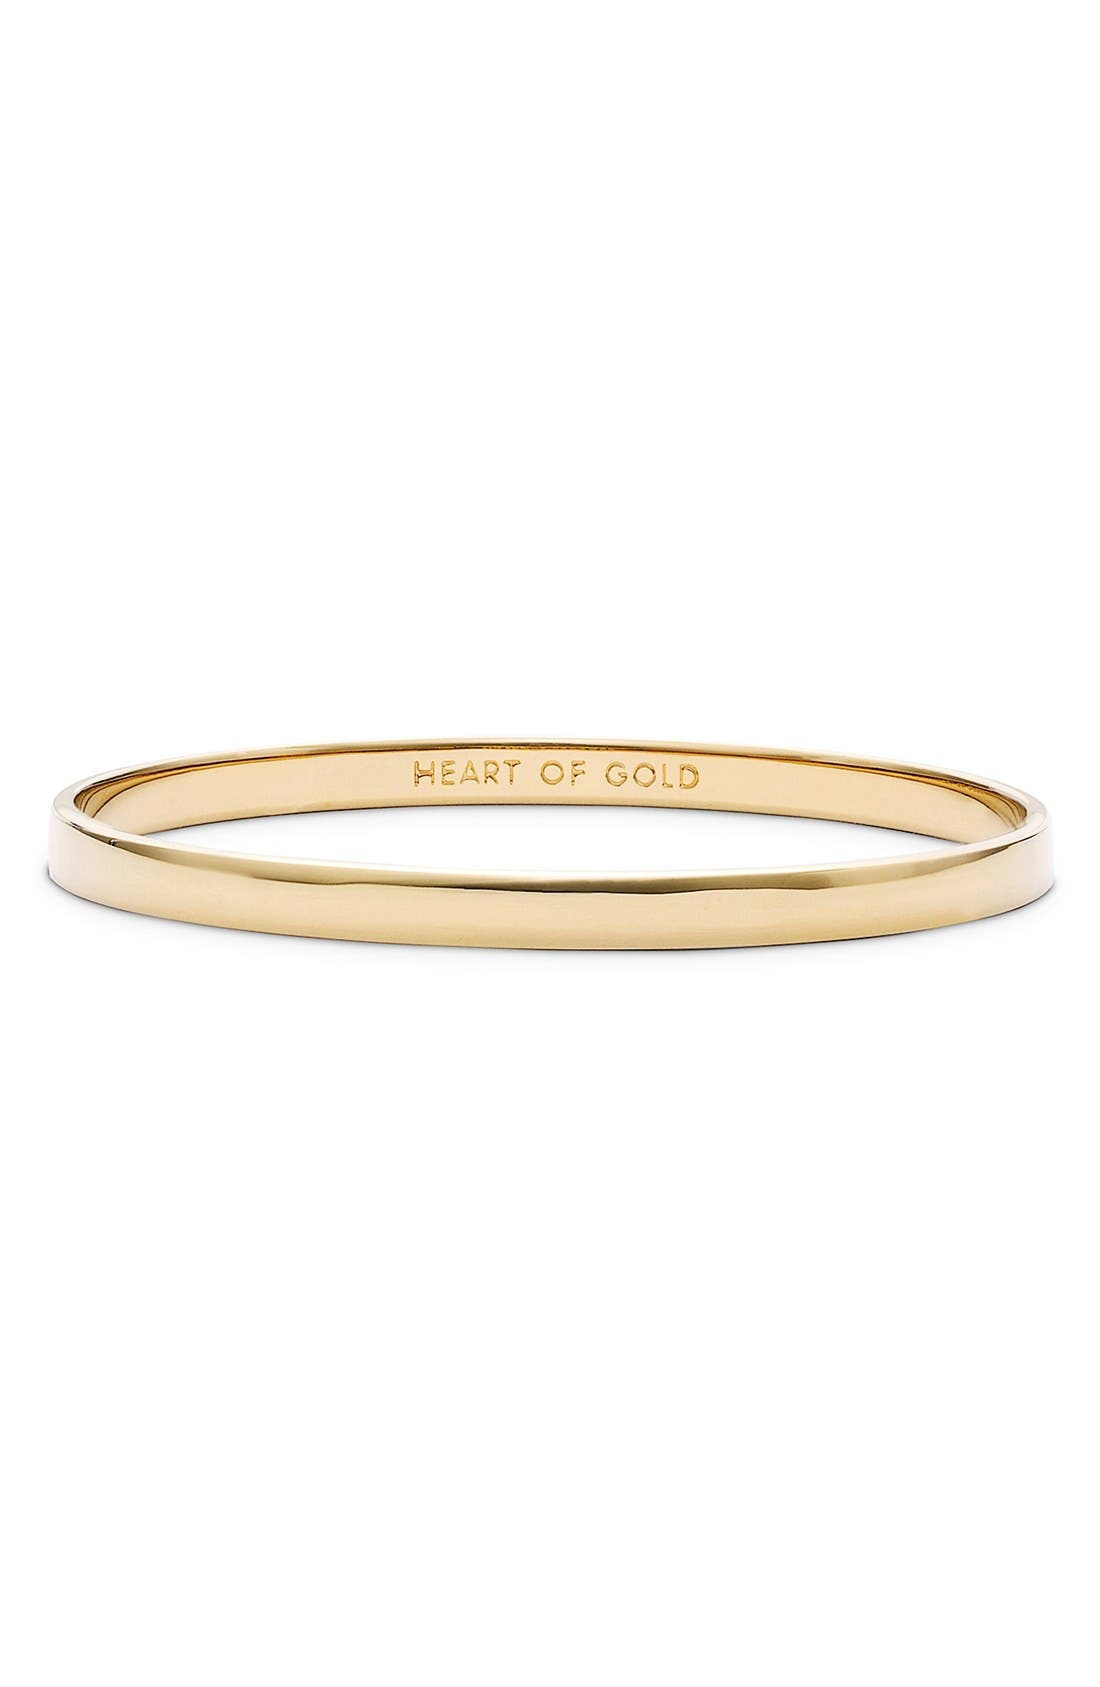 Alternate Image 1 Selected - kate spade new york 'idiom - heart of gold' bangle